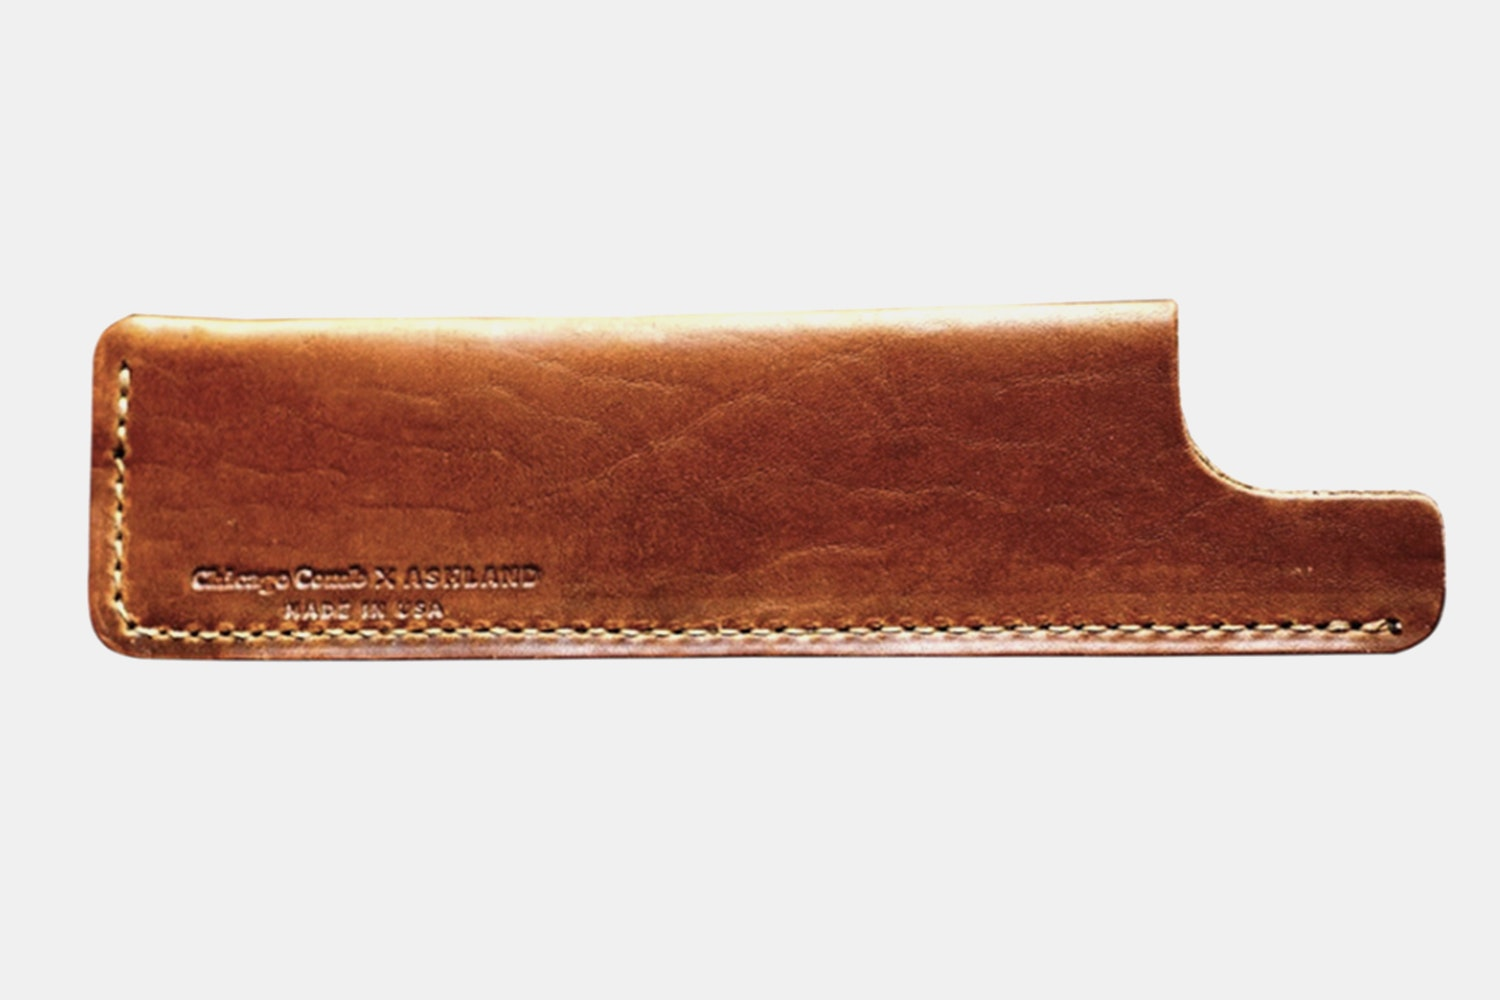 Dublin English Tan Horween Sheath (+ $15)